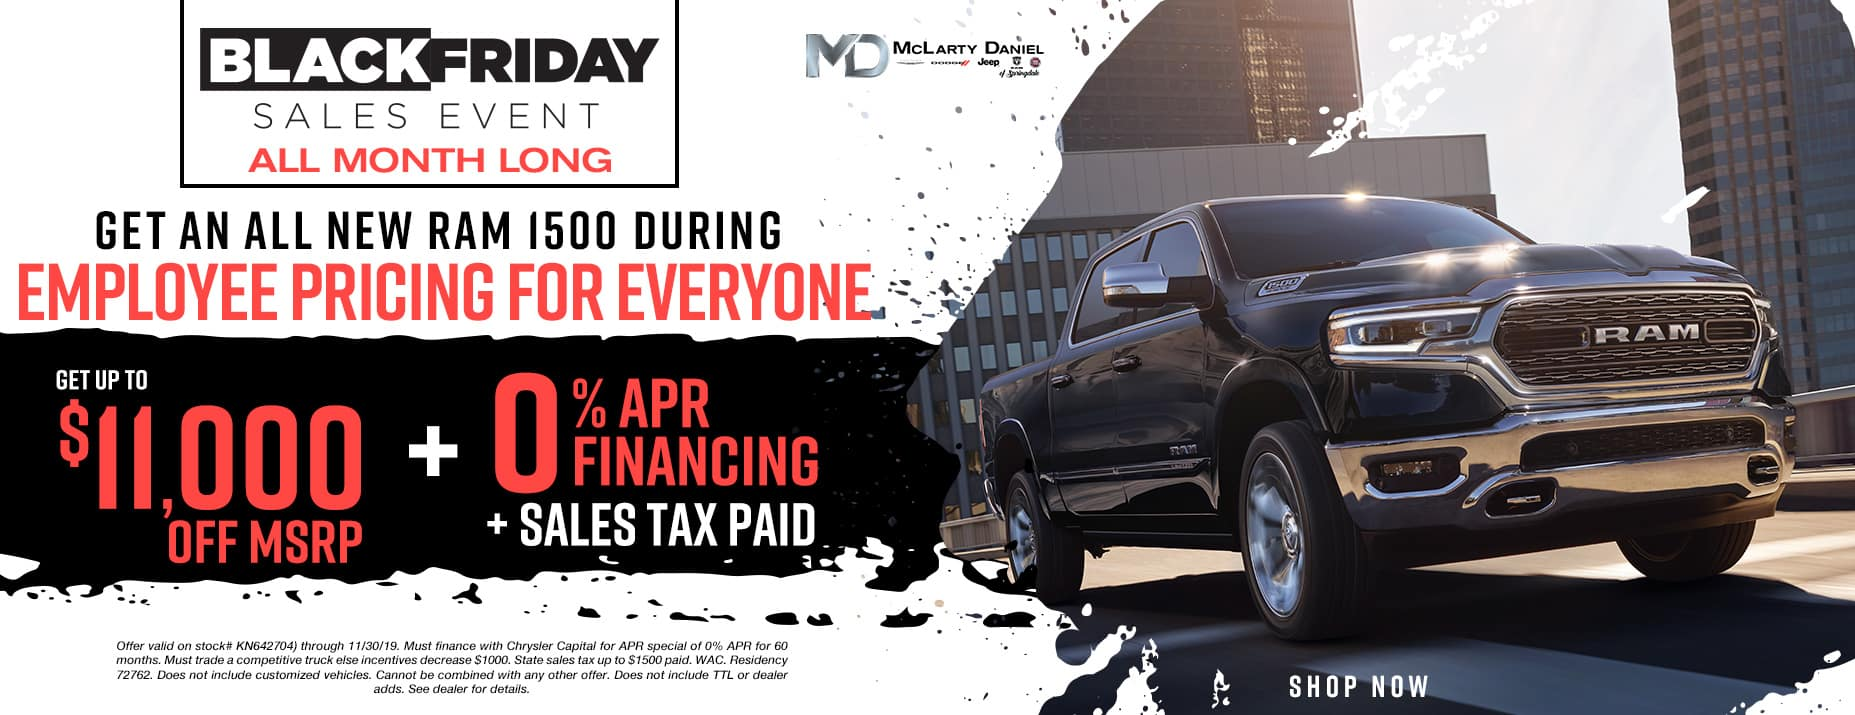 DURING EMPLOYEE PRICING FOR EVERYONE, GETUP TO $11,000 OFF THE ALL NEWRAM 1500 PLUS 0% FINANCING PLUS SALES TAX PAID!